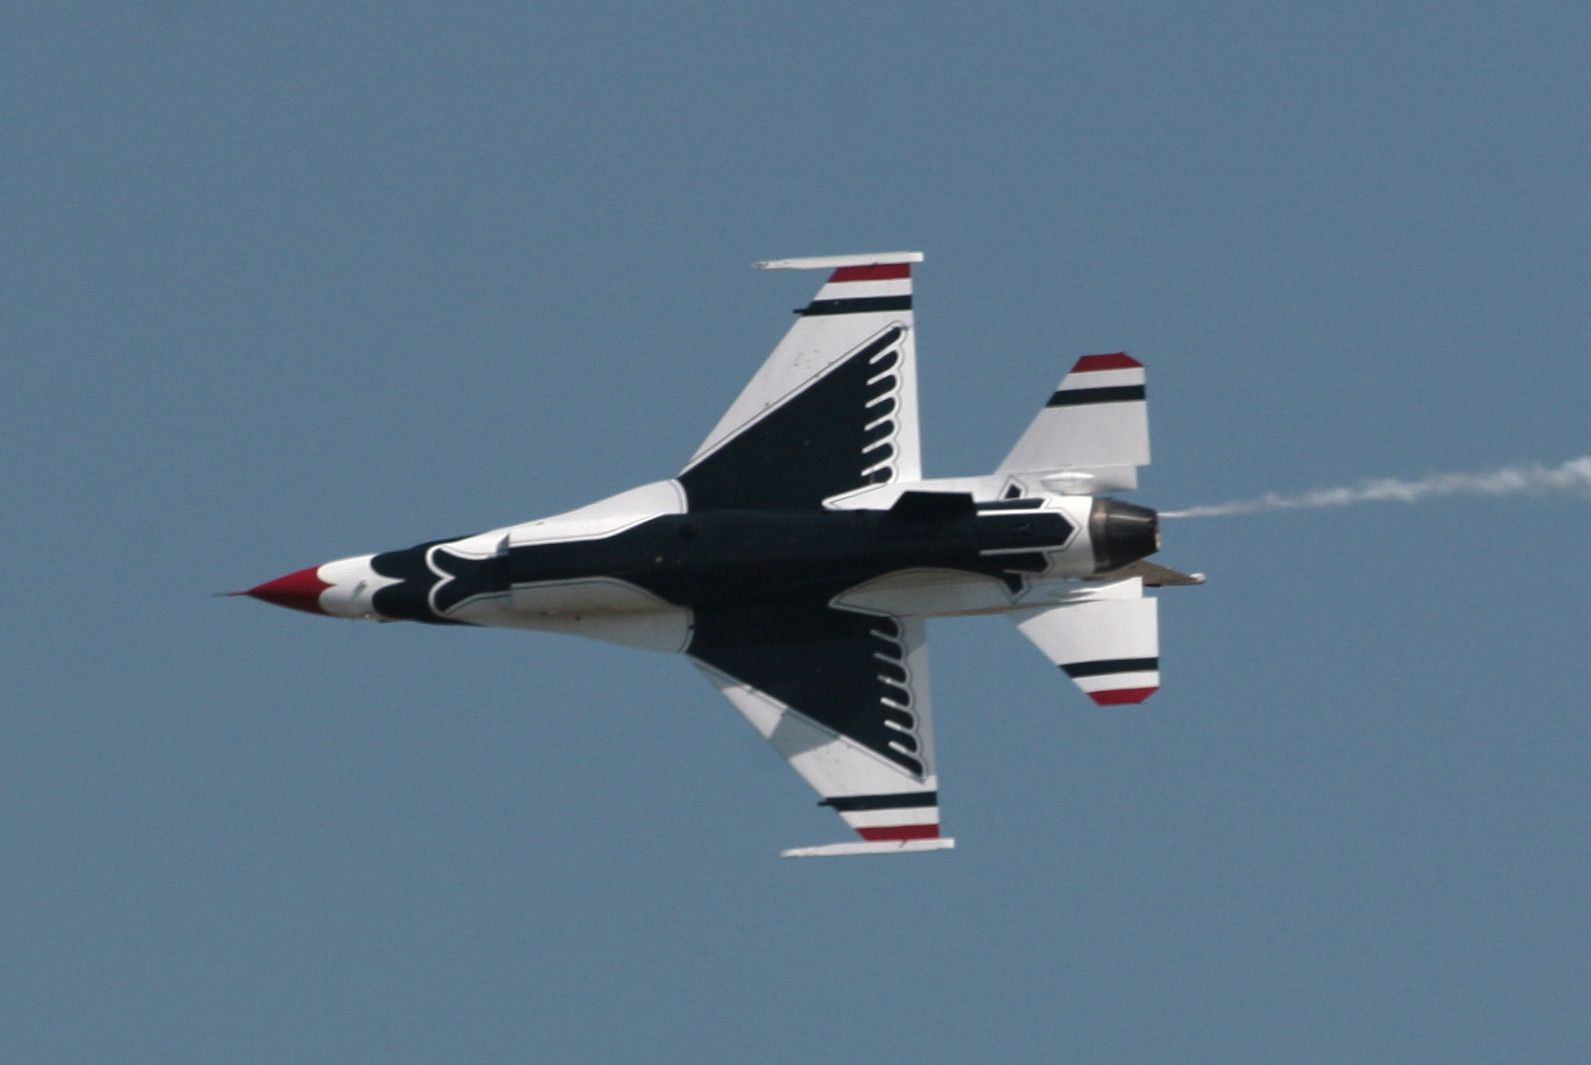 Thunderbirds, the USAF Air Demonstration Squadron at Fort